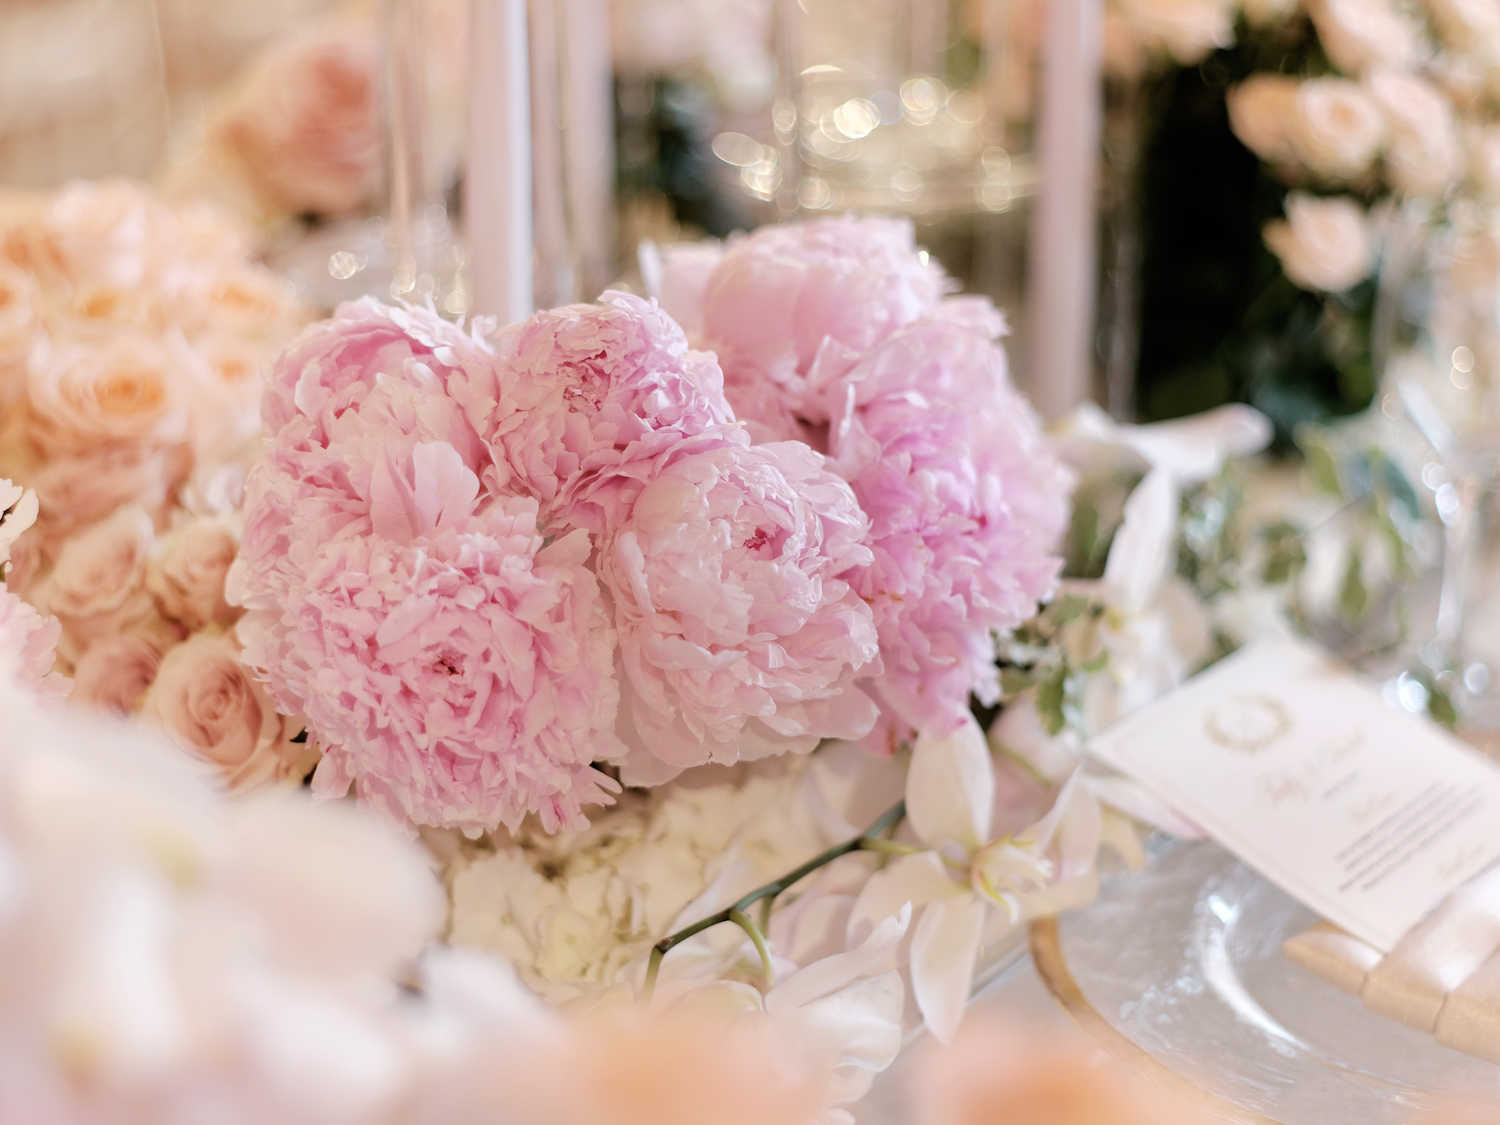 Easy flower arrangement for Mother's Day - single-variety flower arrangements like this pink peony bouquet are the perfect DIY table idea setting for Mother's Day brunch. Designed by Eddie Zaratsian Lifestyle and Design.